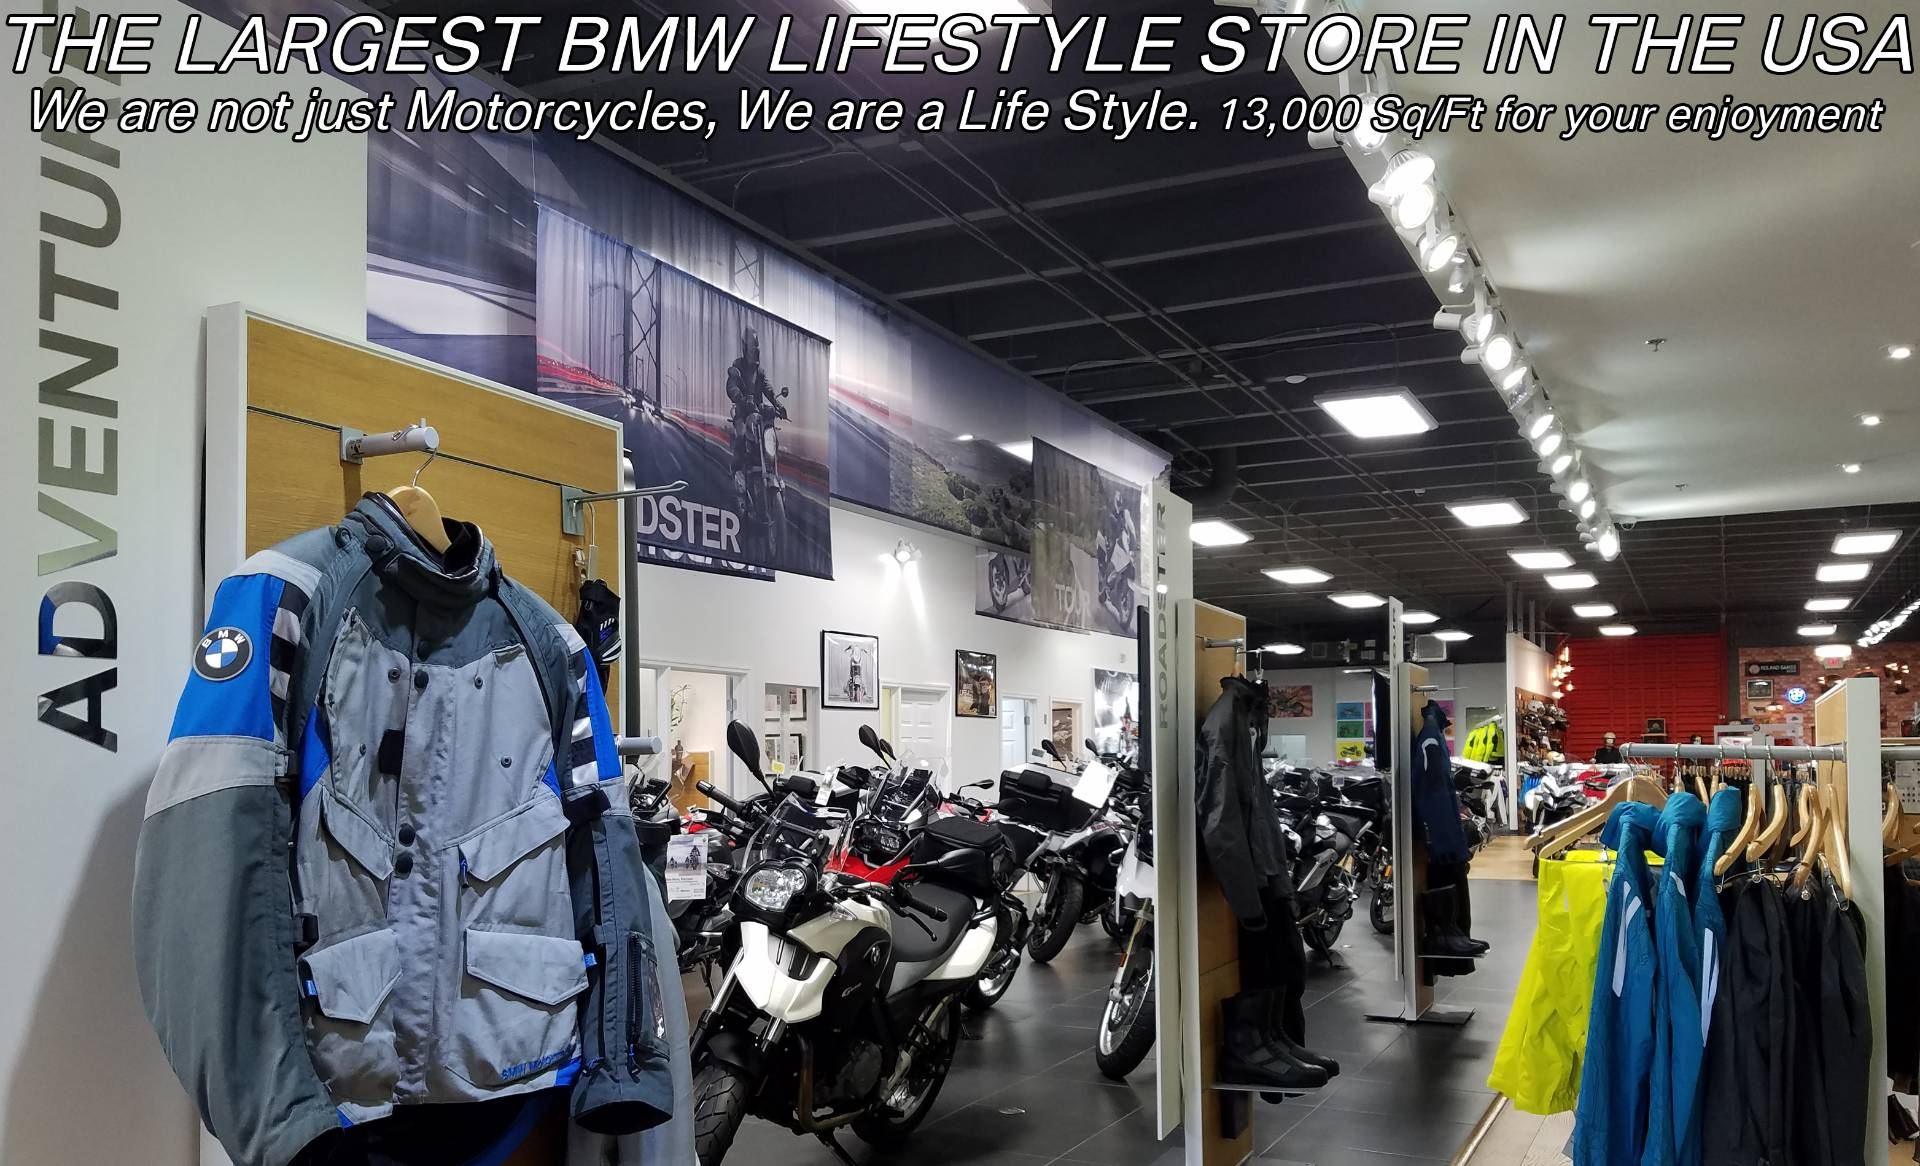 Used 2011 BMW R 1200 GSA For Sale, Pre owned BMW R 1200GSA For Sale, BMW Motorcycle R1200GSA, BMW Motorcycles of Miami, Motorcycles of Miami, Motorcycles Miami - Photo 52